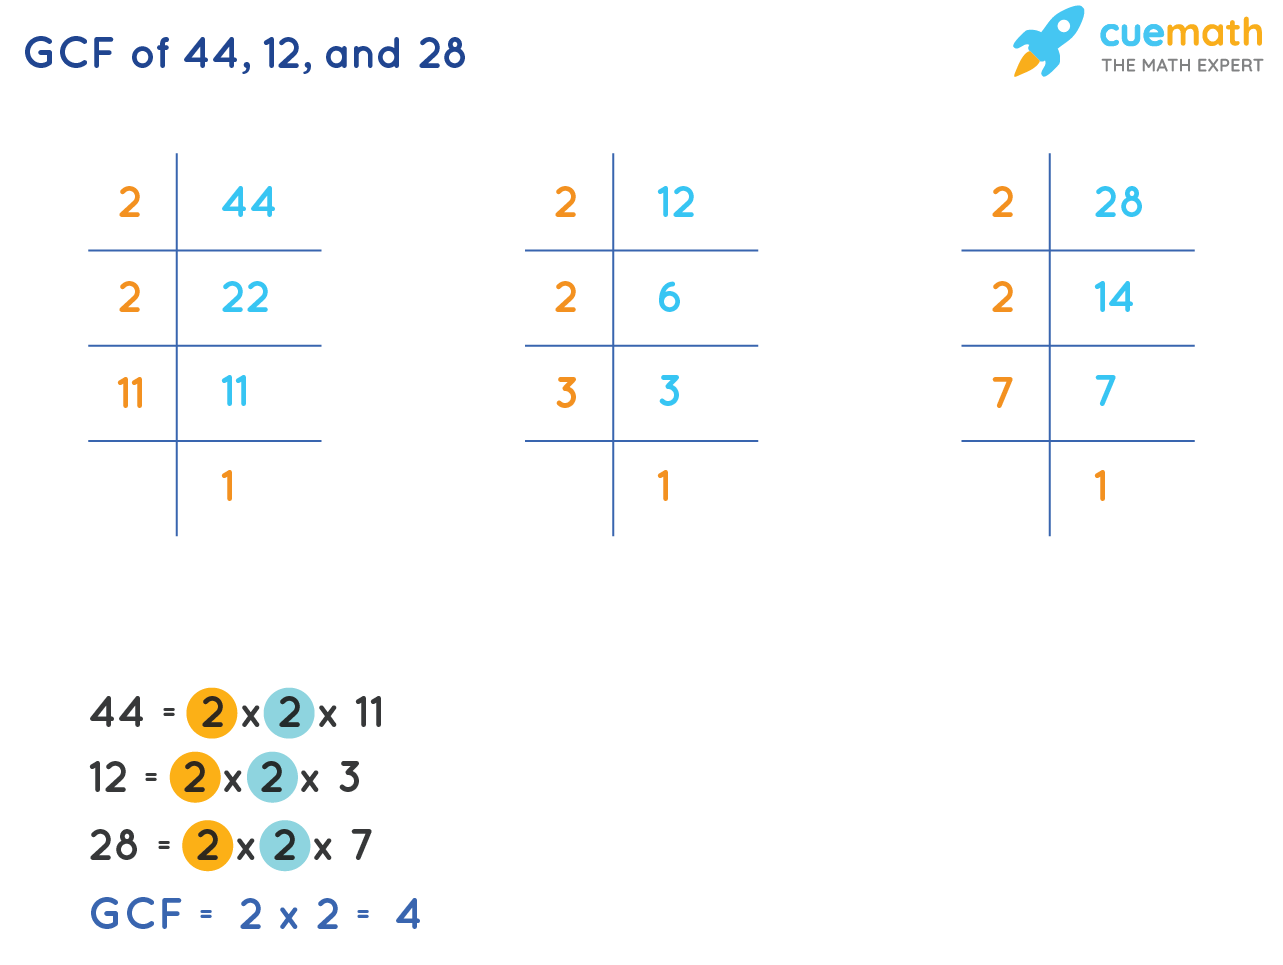 GCF of 44, 12, and 28 by prime factorization